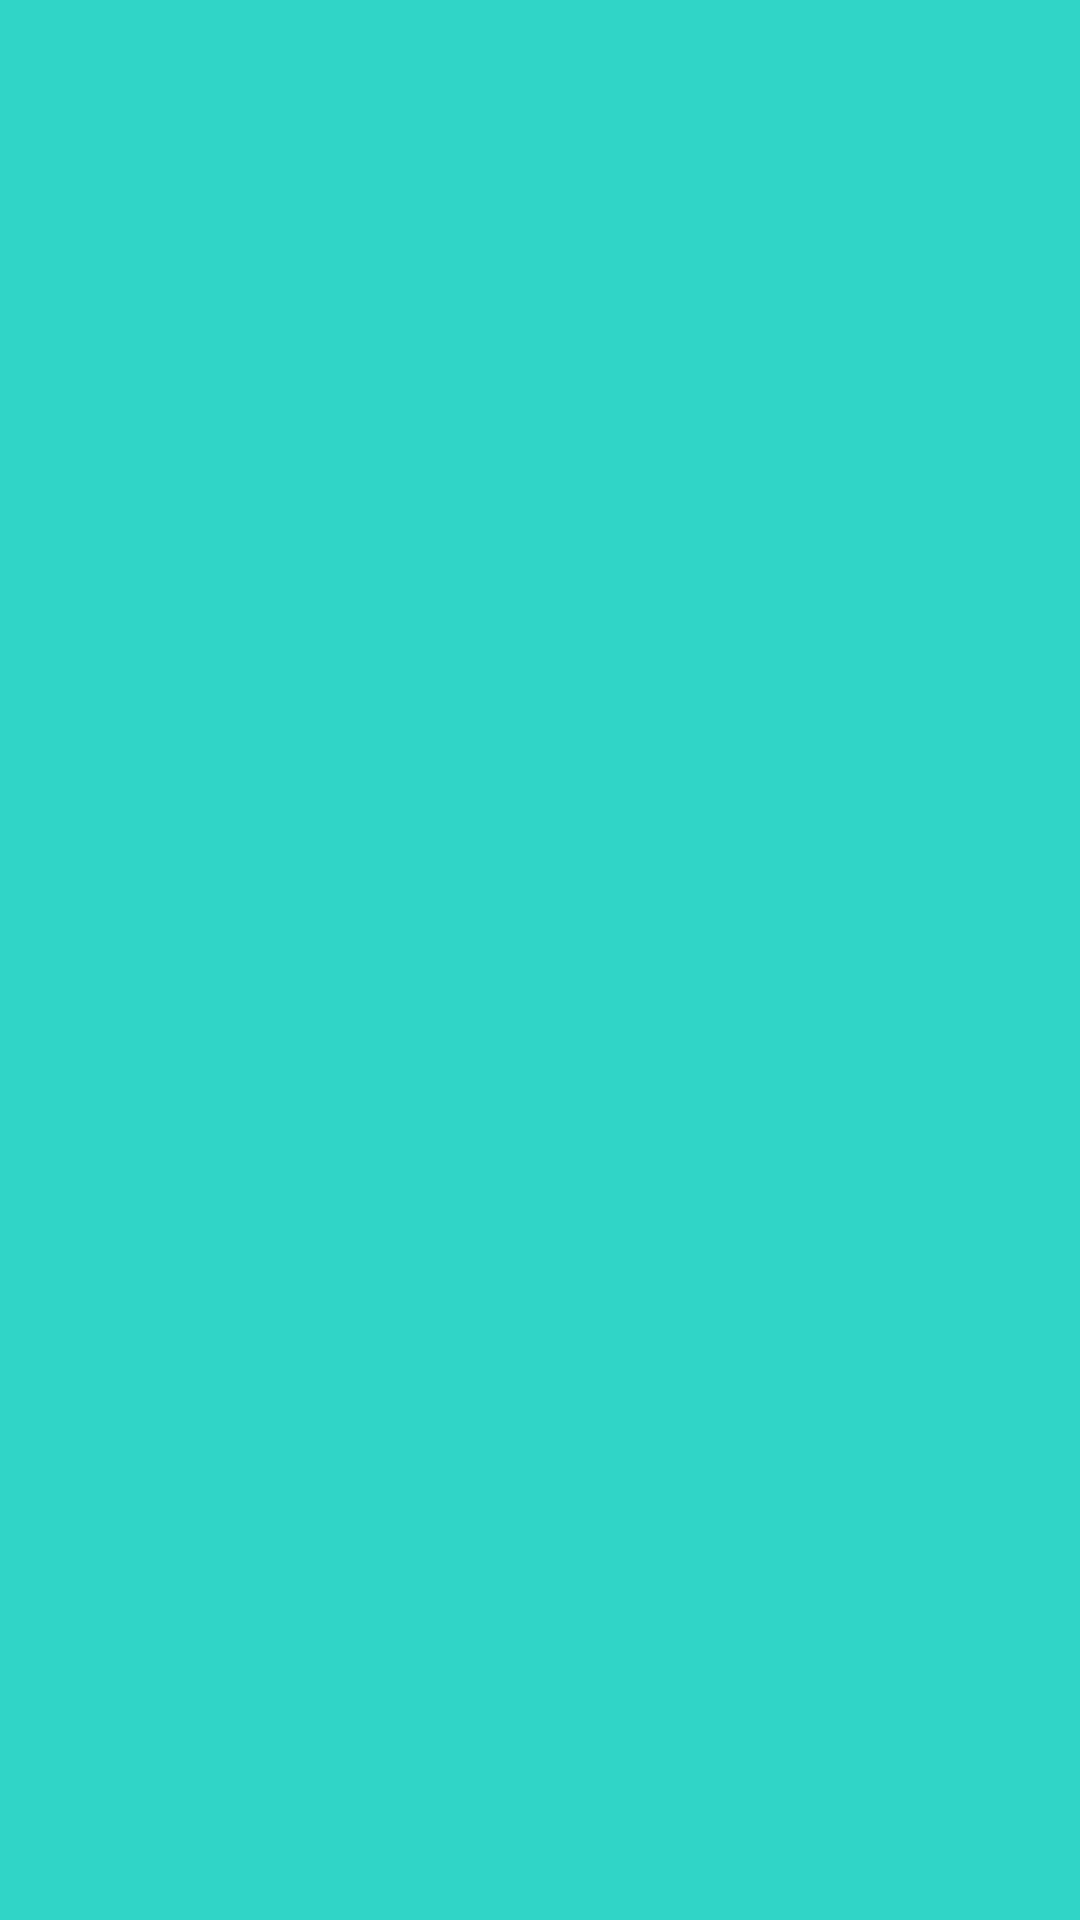 1080x1920 Turquoise Solid Color Background